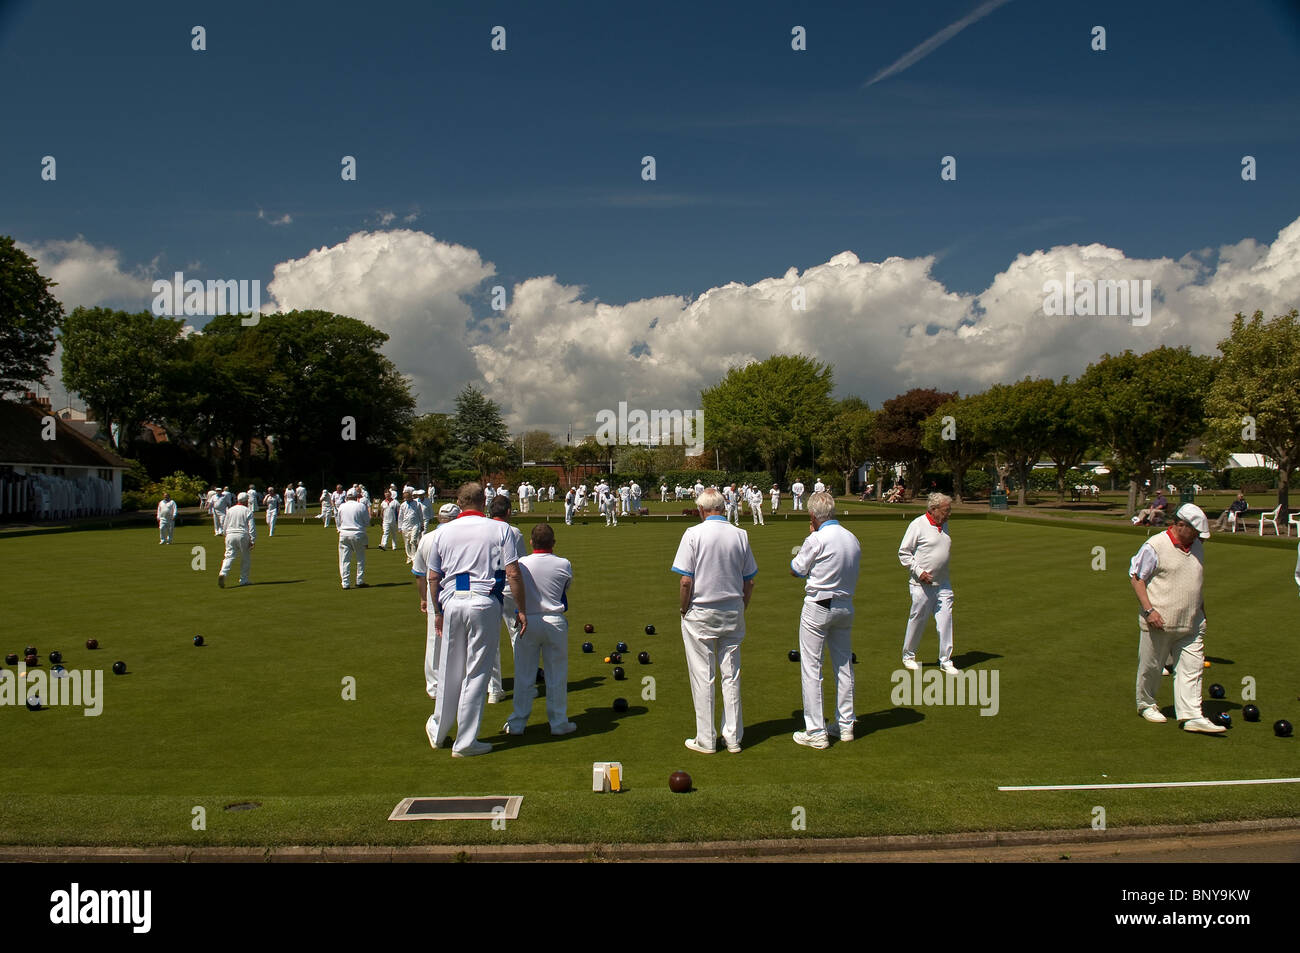 Bowls tournament in Beach House Park, Worthing, West Sussex, UK - Stock Image